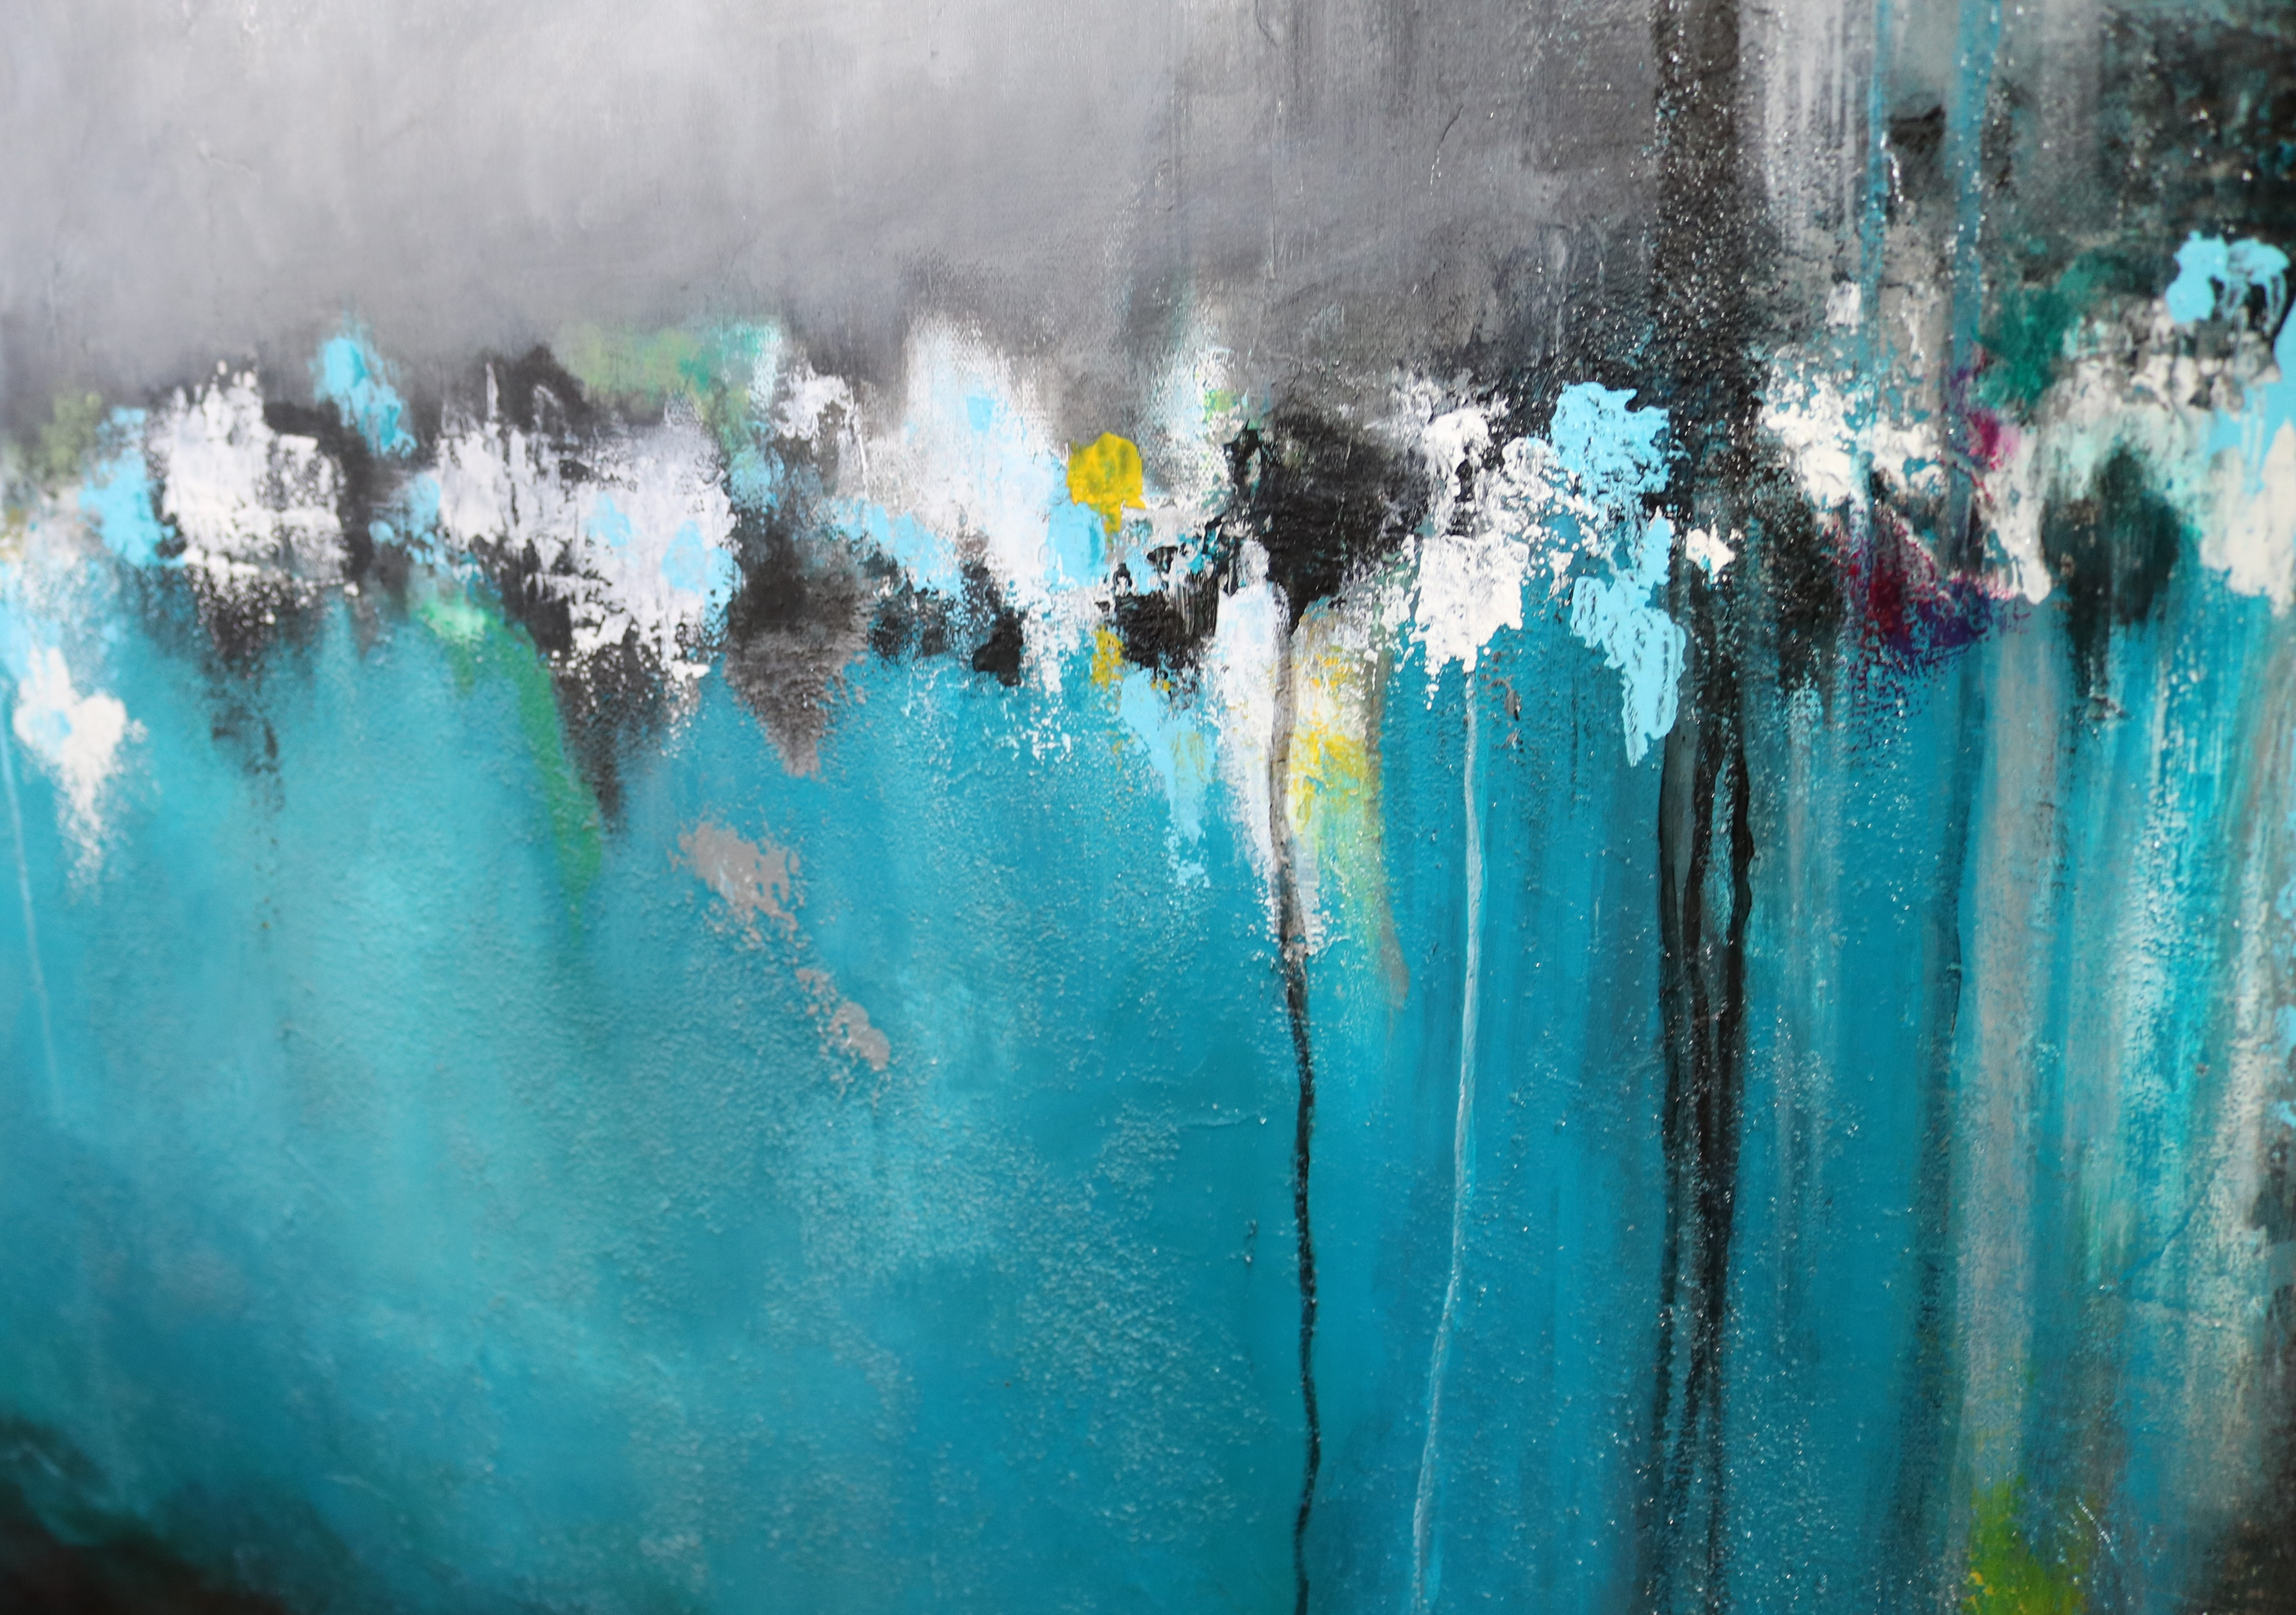 Calm-Original Abstract Painting (SOLD) by Amy Provonchee ...